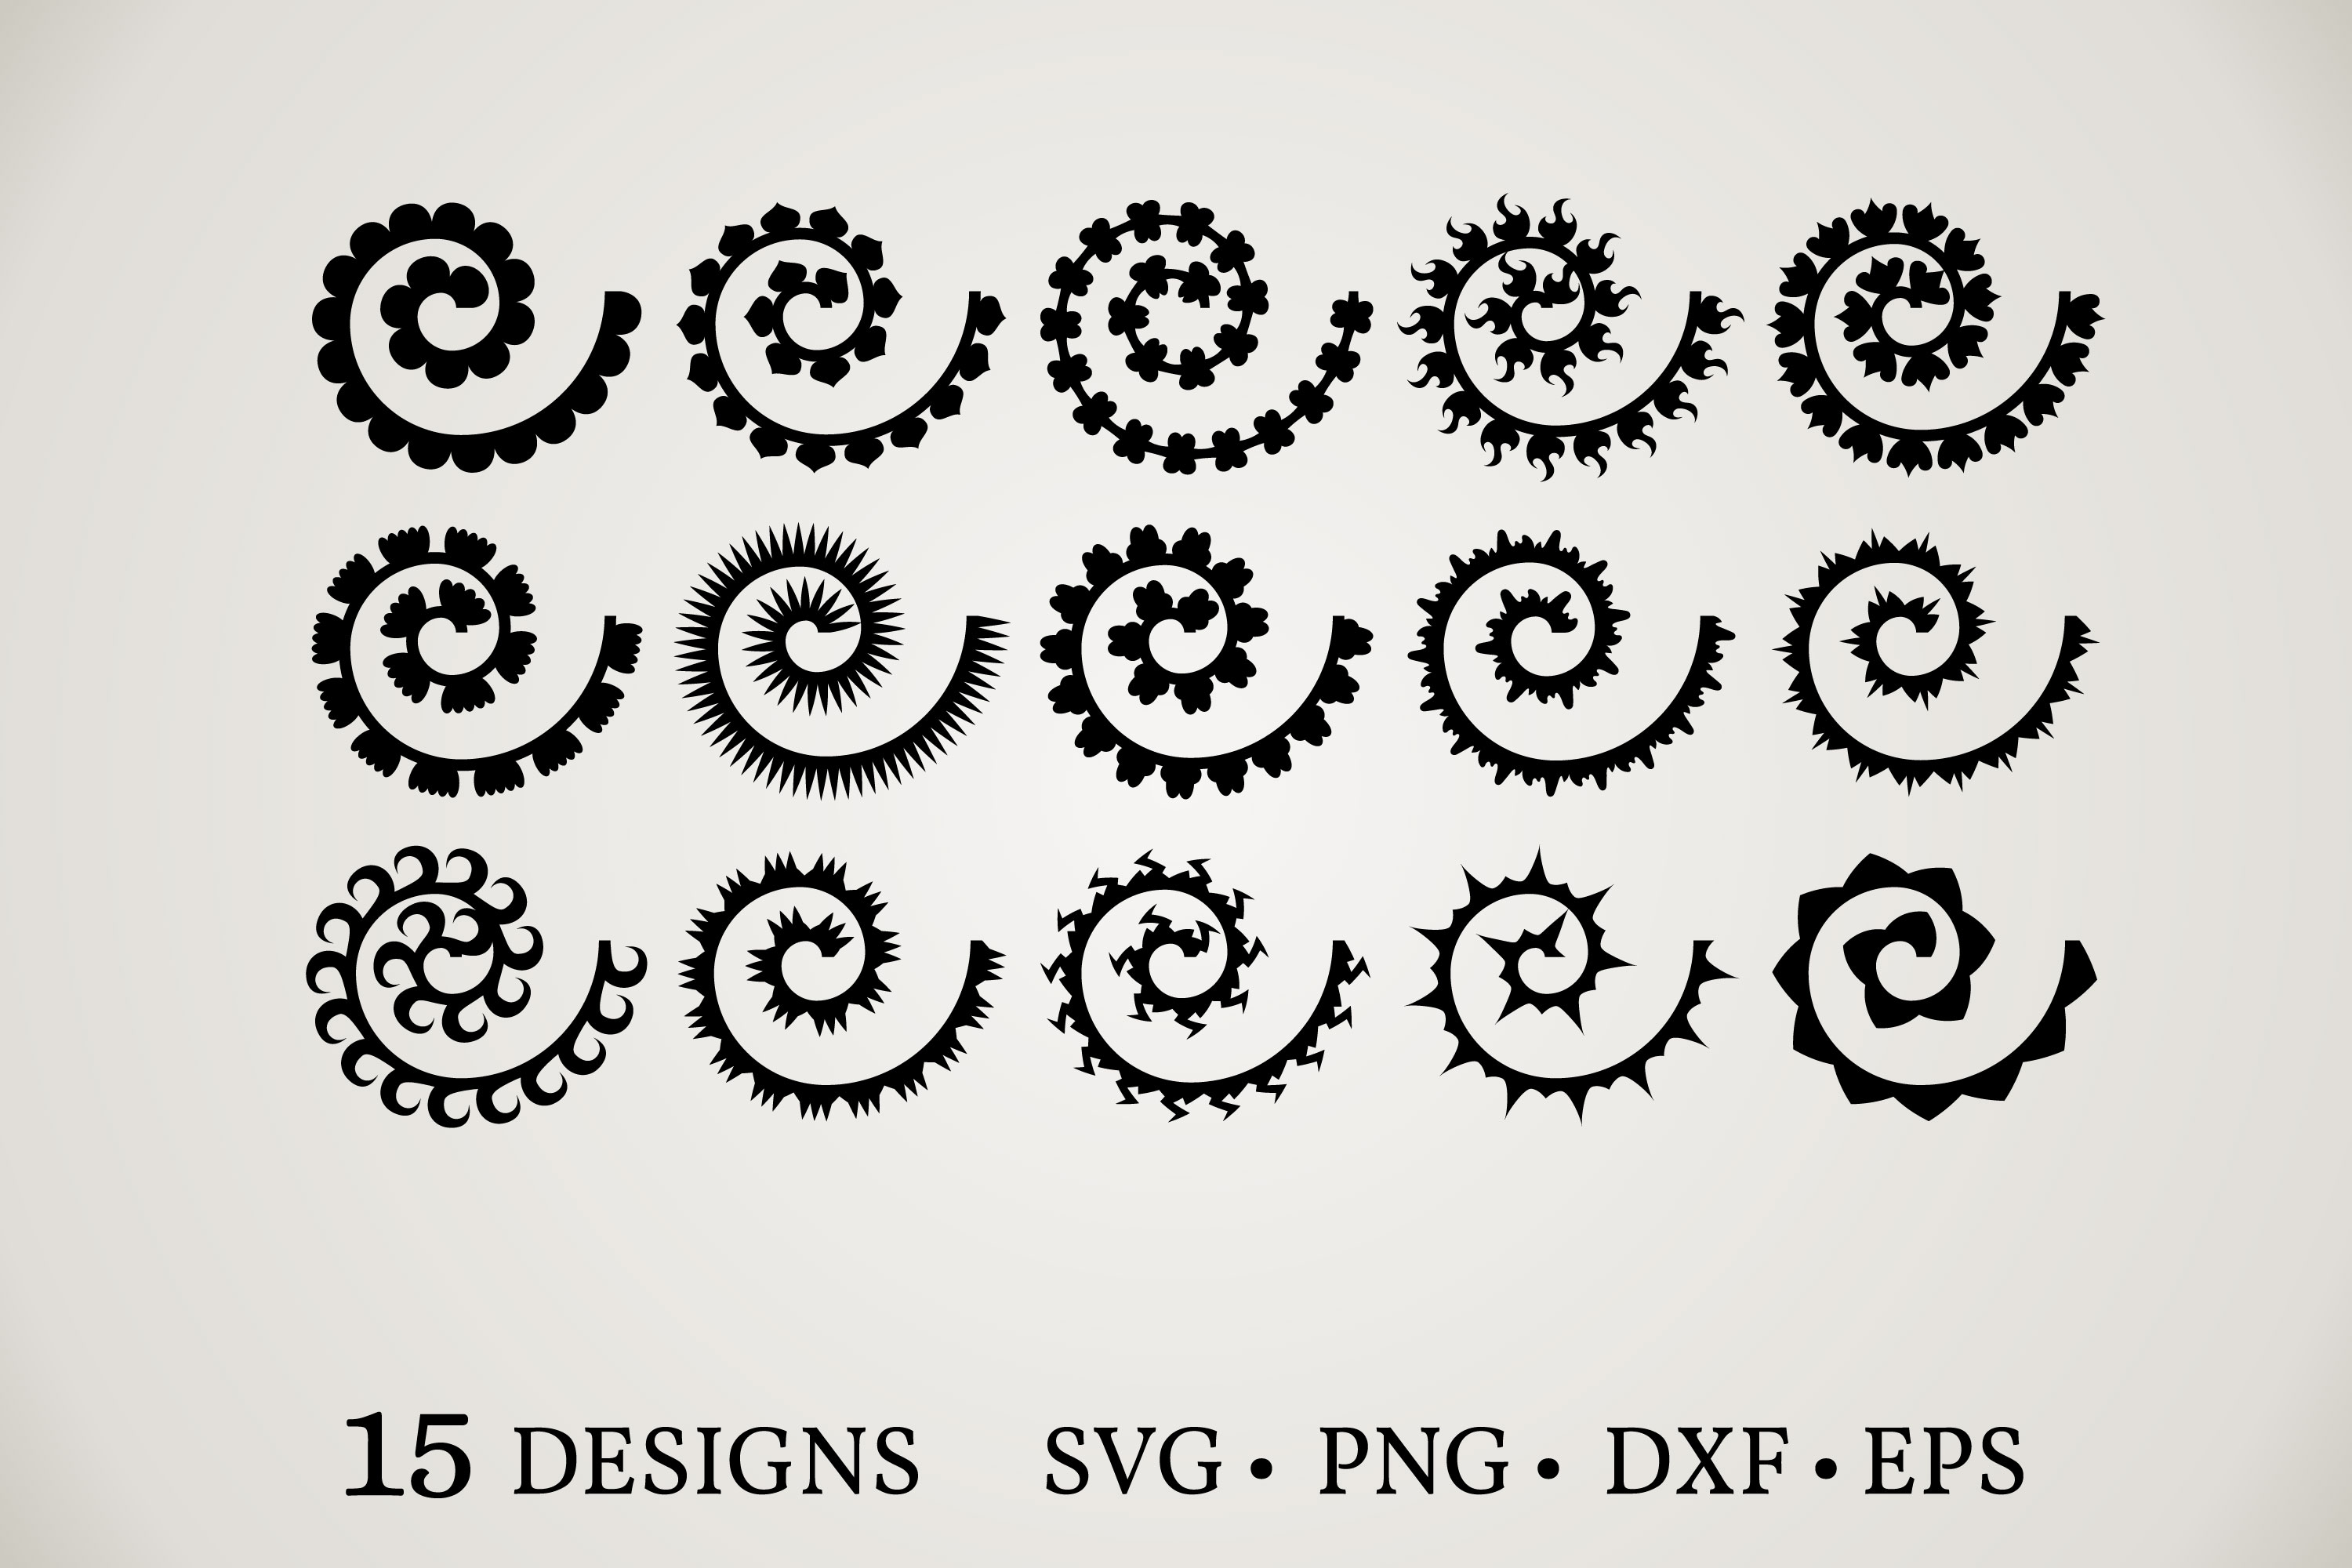 Rolled Paper Flowers SVG File